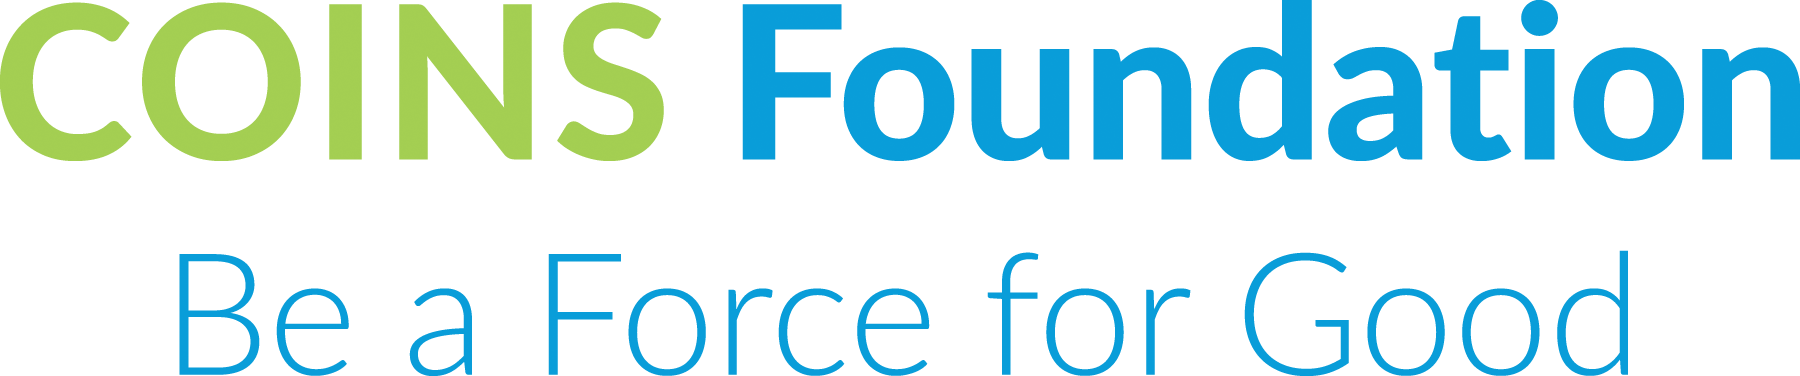 COINS Foundation Logo